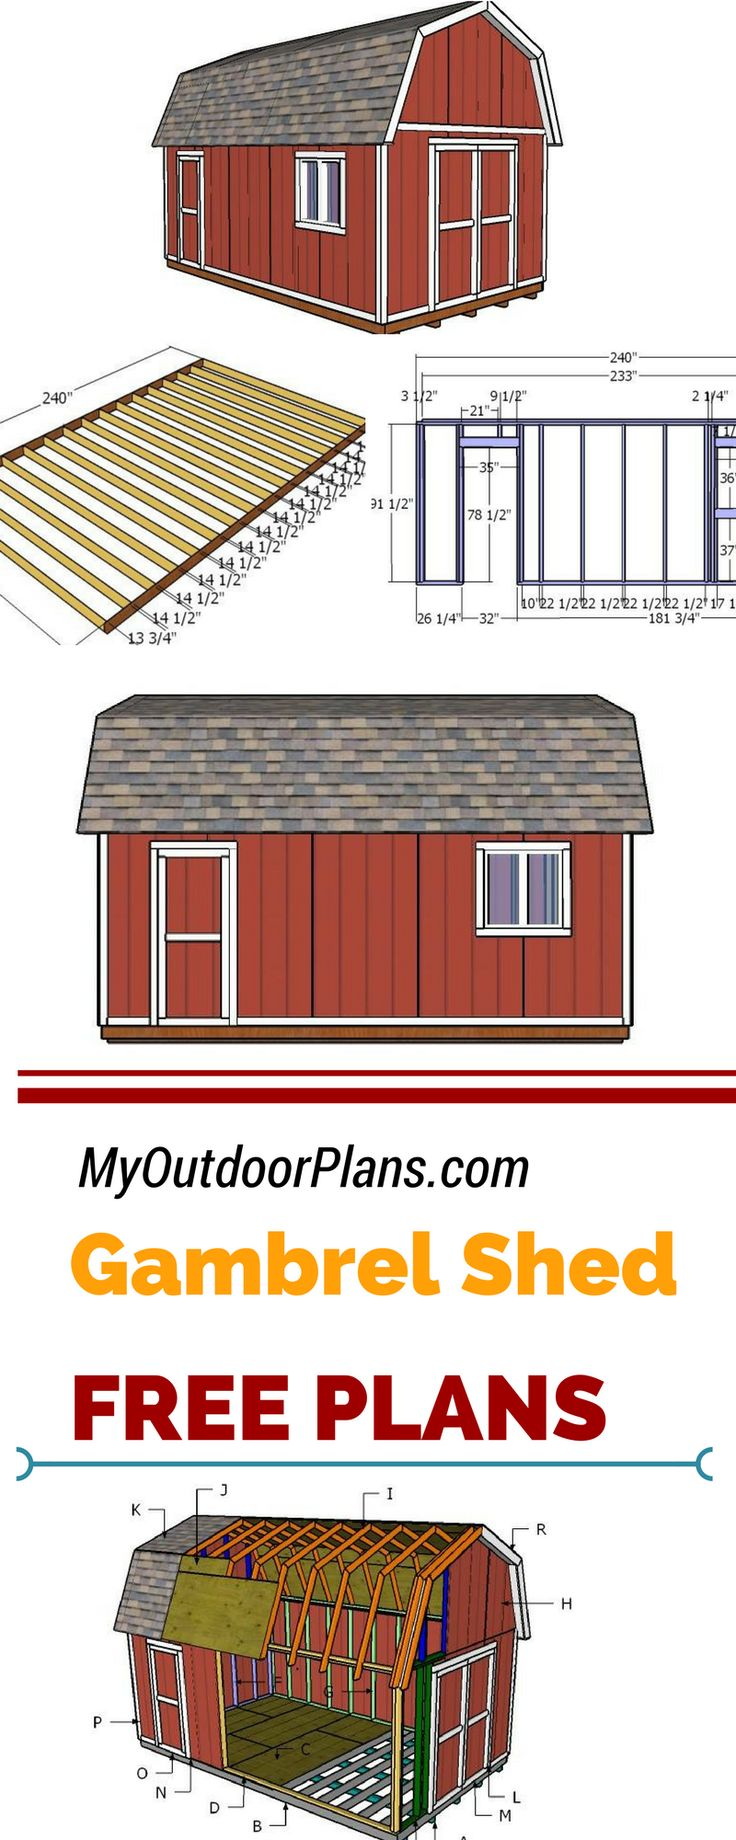 If you need more storage space in your backyard, you should check out my free gambrel shed plans. This 12x20 shed is ideal for a small workshop or for storing tools and other small items!